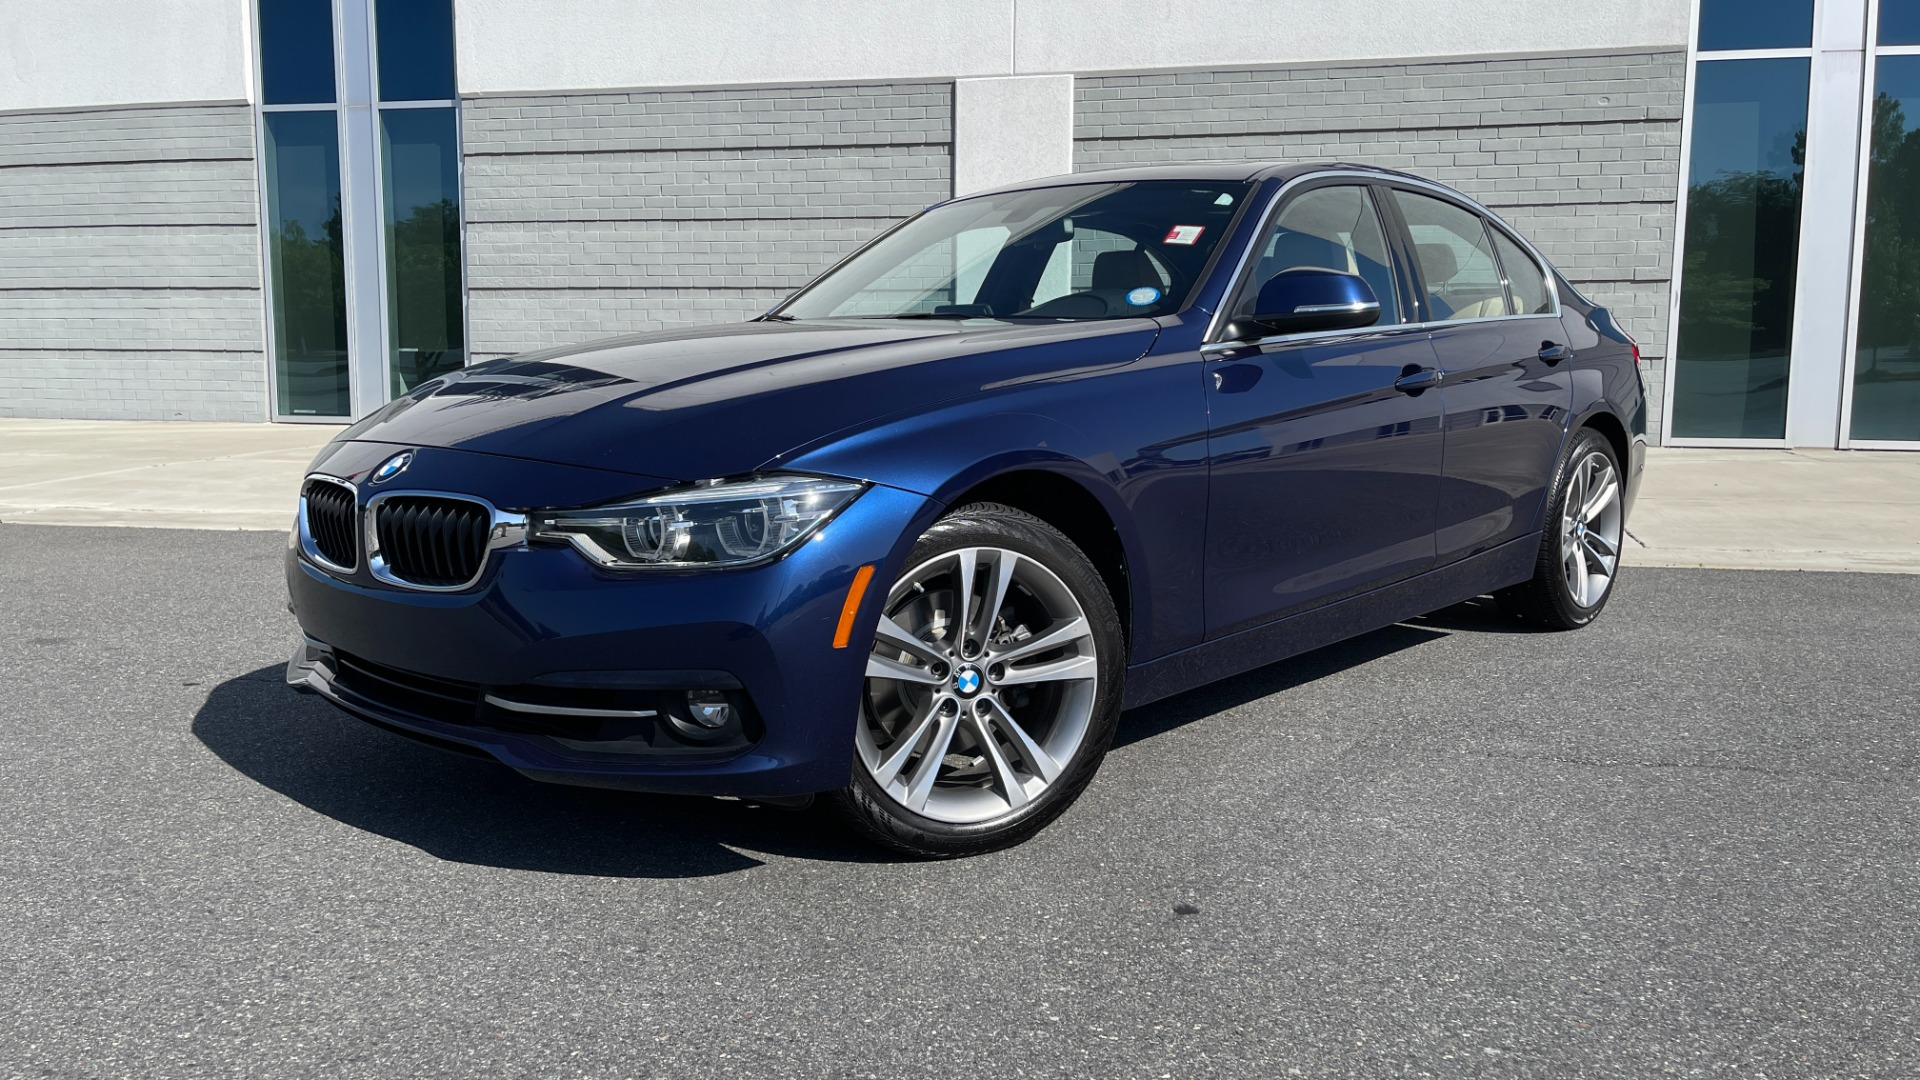 Used 2018 BMW 3 SERIES 330I XDRIVE / CONV PKG / SUNROOF / HTD STS / BLIND SPOT for sale $28,495 at Formula Imports in Charlotte NC 28227 1